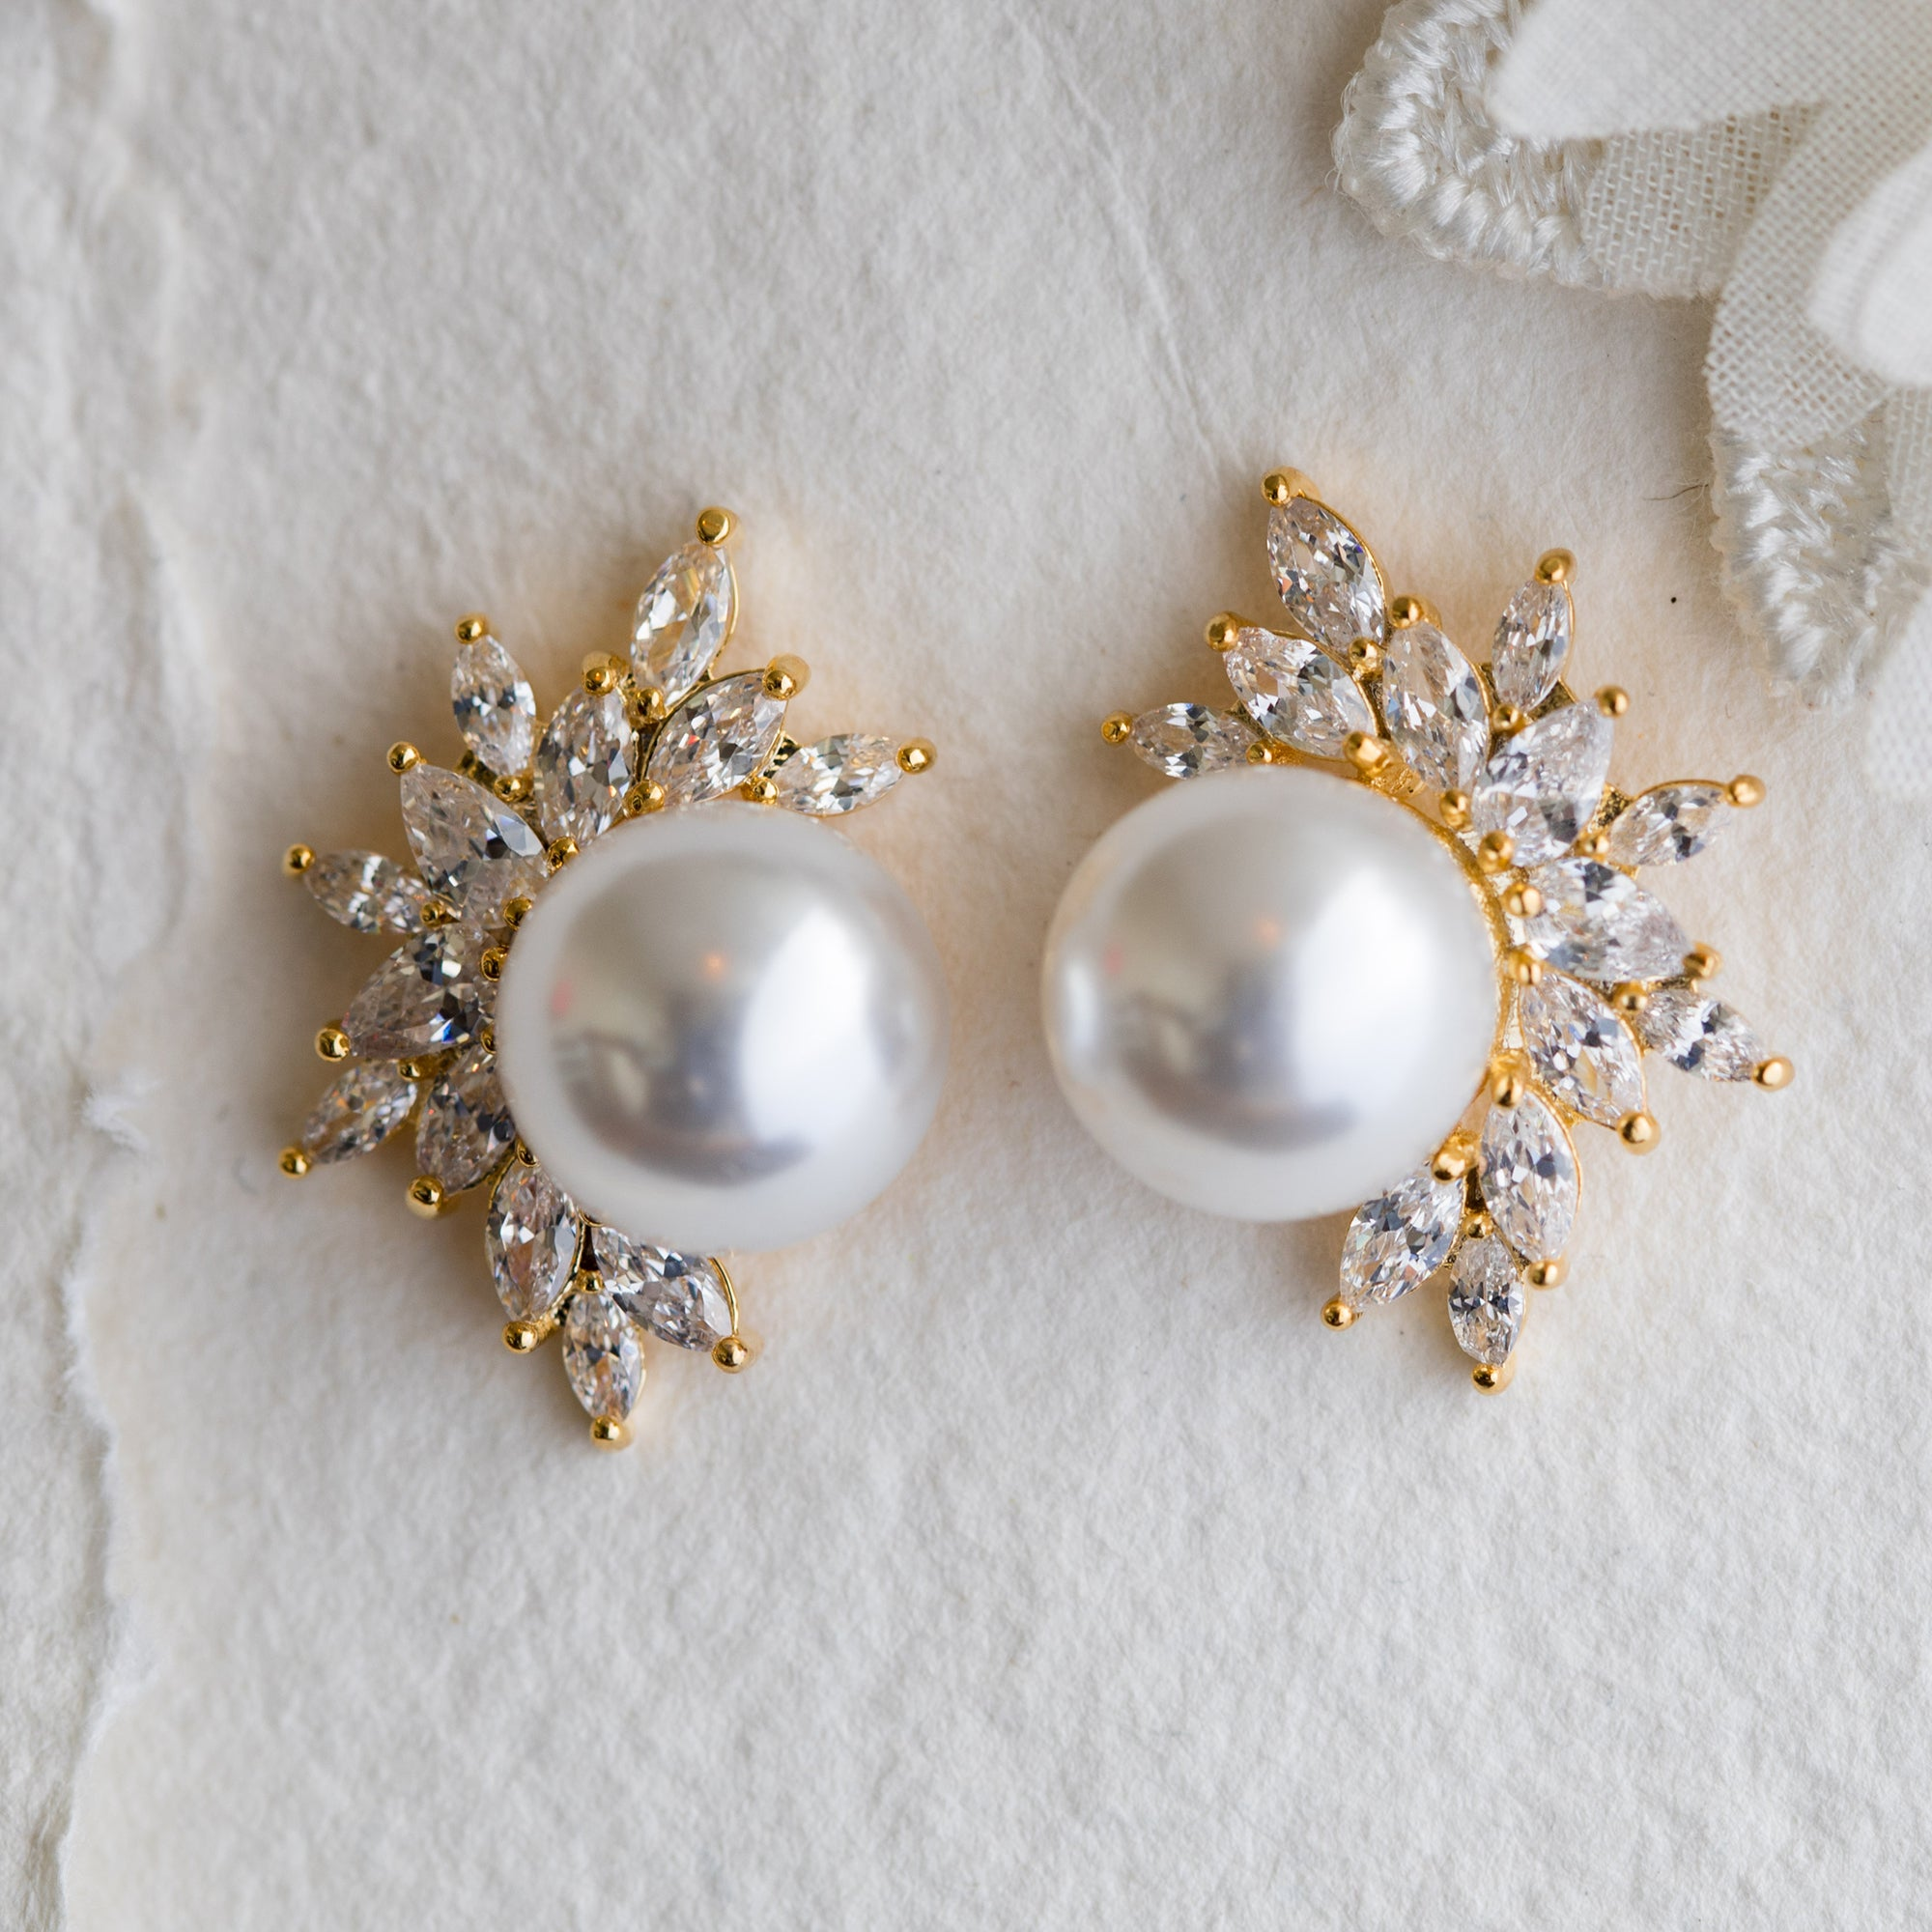 Cece crystal and pearl gold earrings